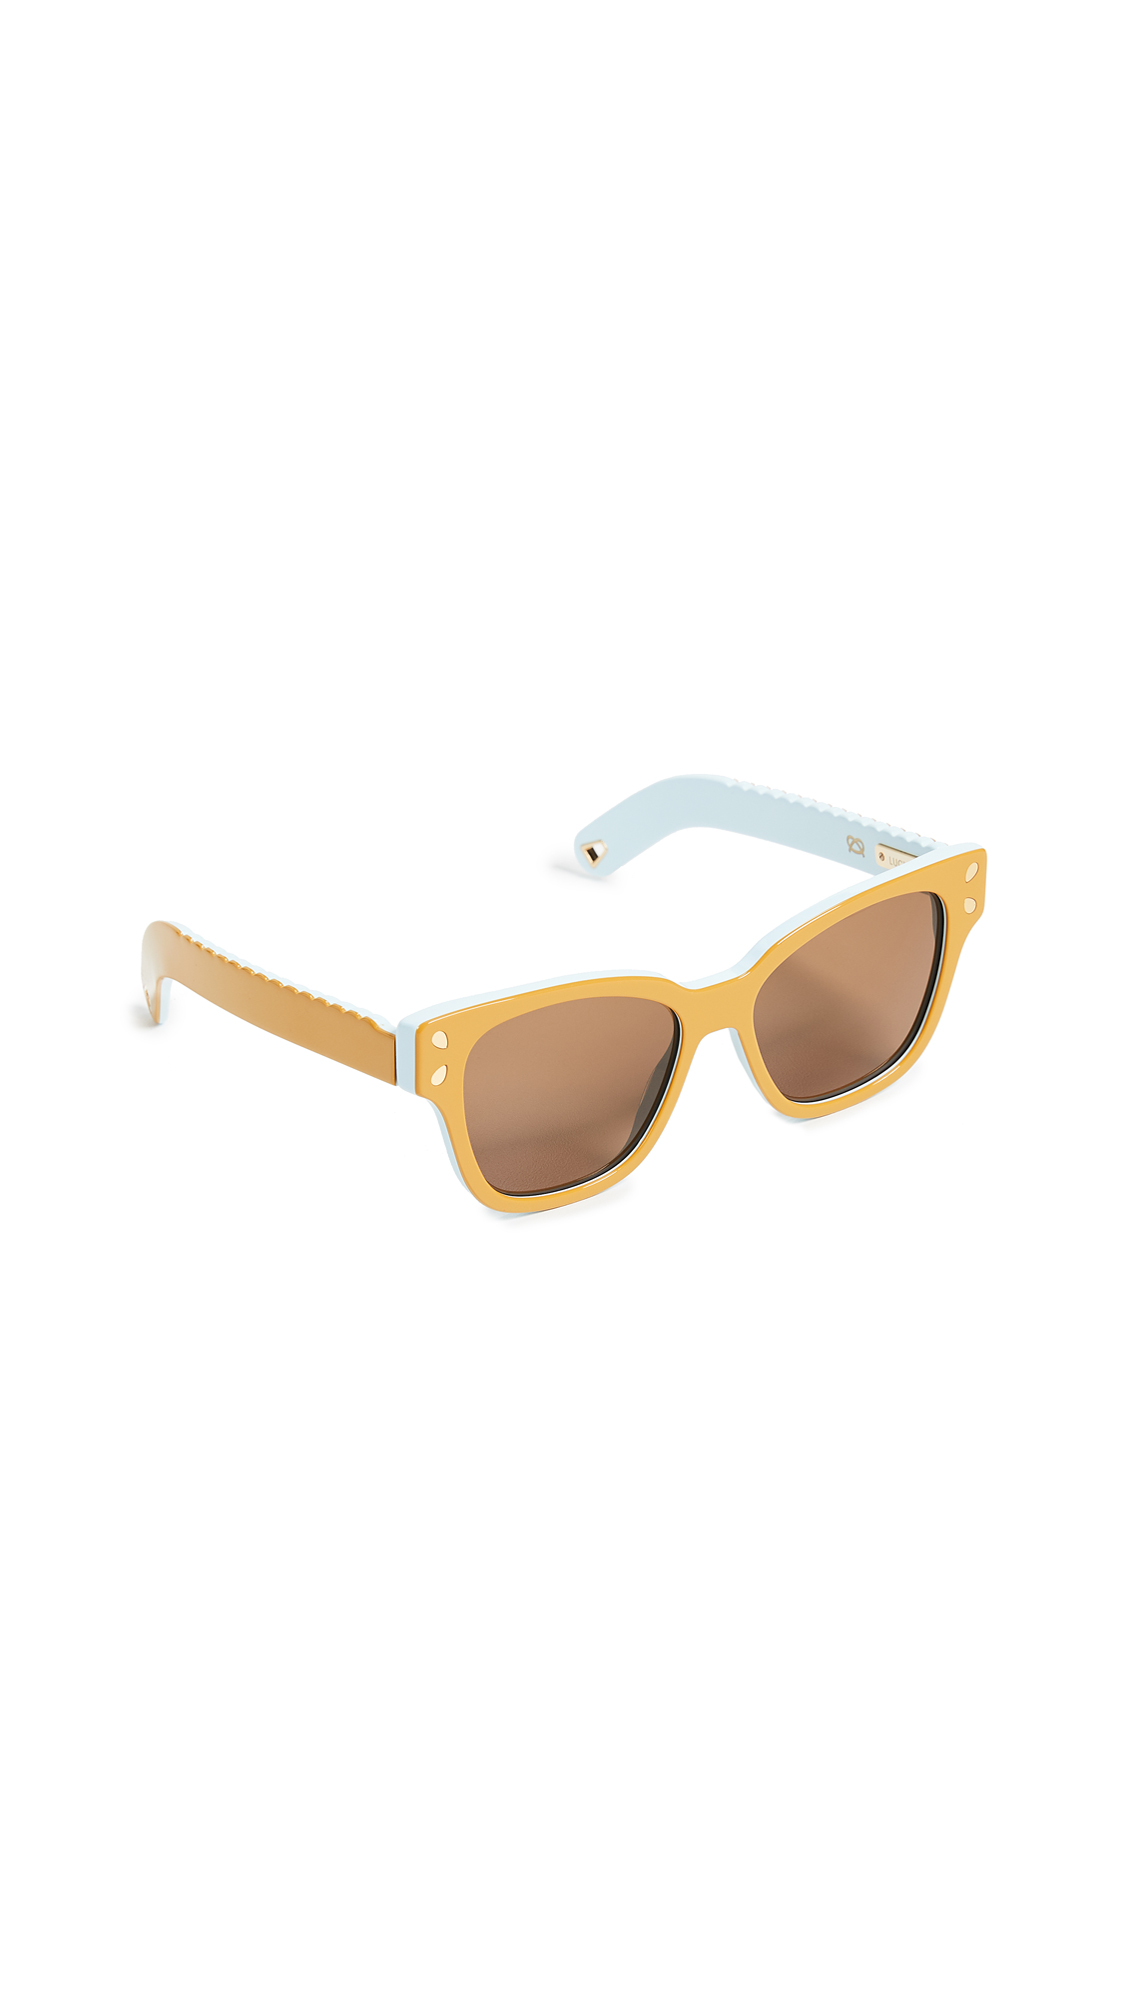 9d6215e59d Lucy Folk Diving For Gold Sunglasses In Tumeric